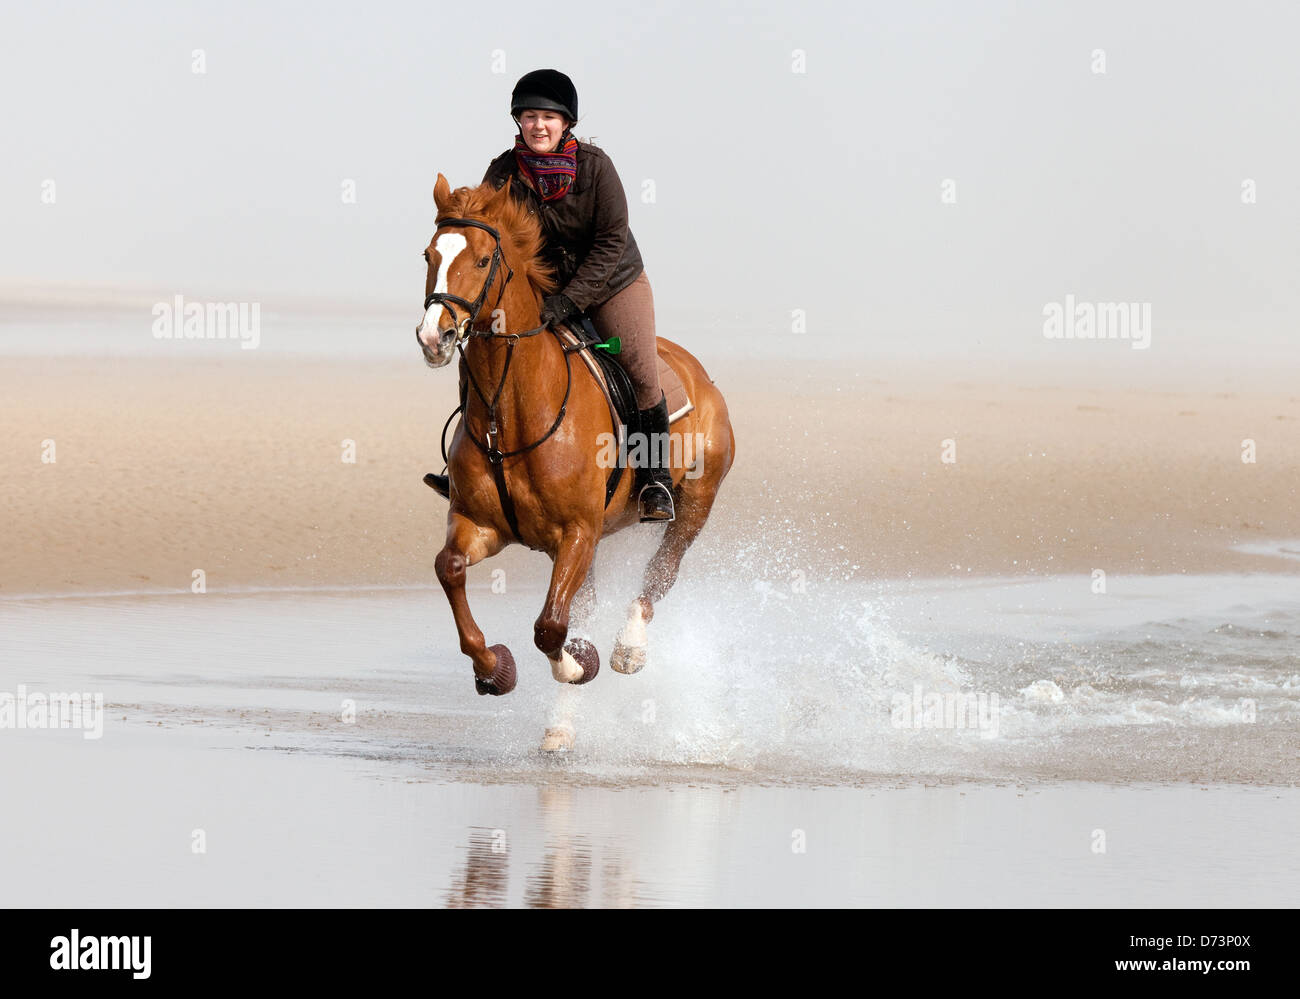 A girl riding her horse galloping on Holkham Beach, Norfolk coast, East Anglia UK - Stock Image